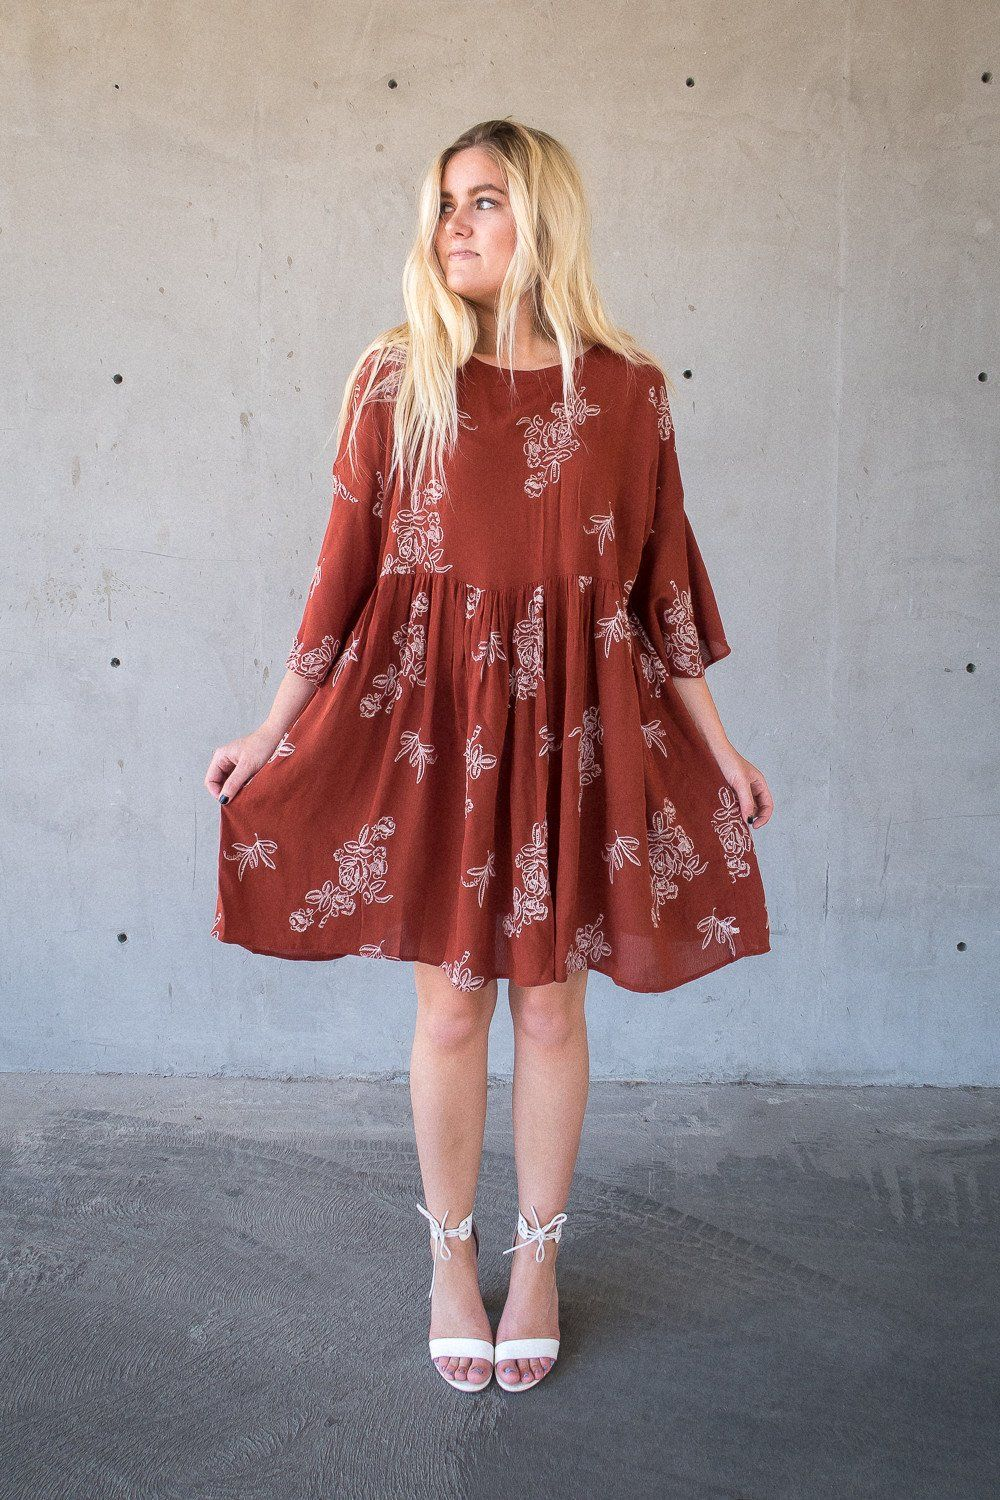 Embroider Me Dress || @beherenowclothing || floral knee length dress, similar to free people, revolve, anthropologie style dress, summer, easy outfit.